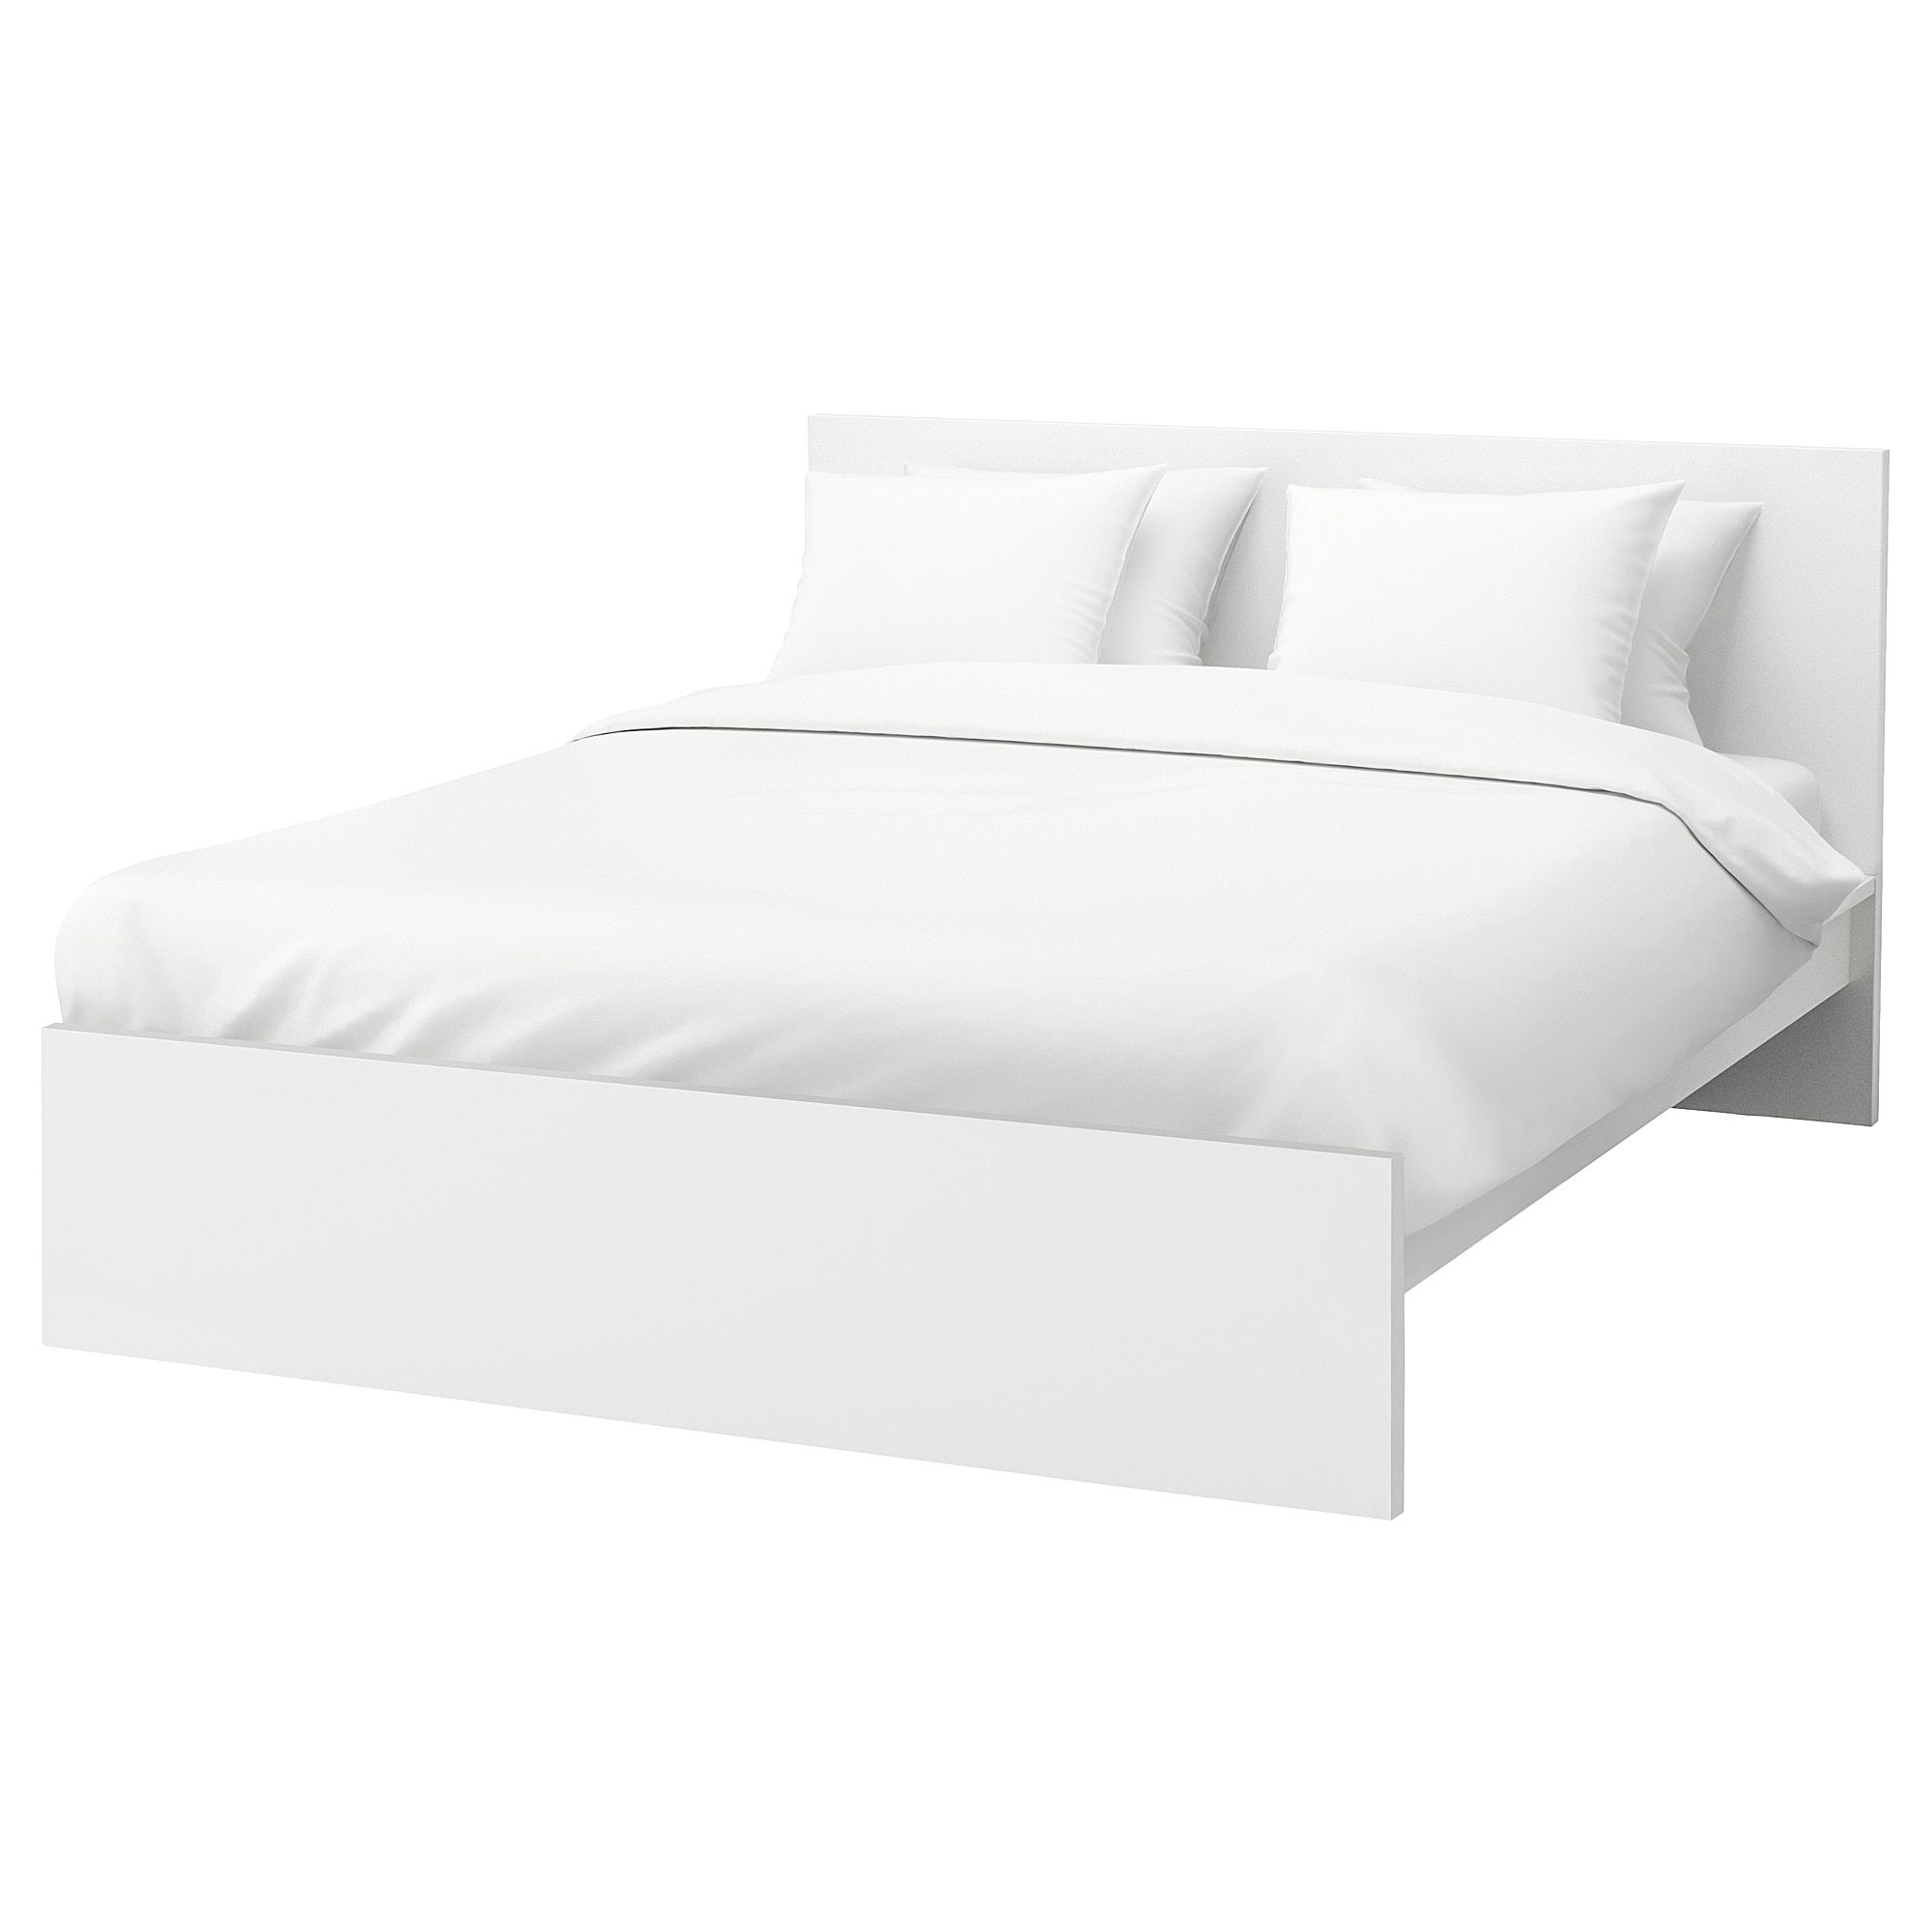 Malm Bed Frame High White Luroy Queen Malm Bed Frame High